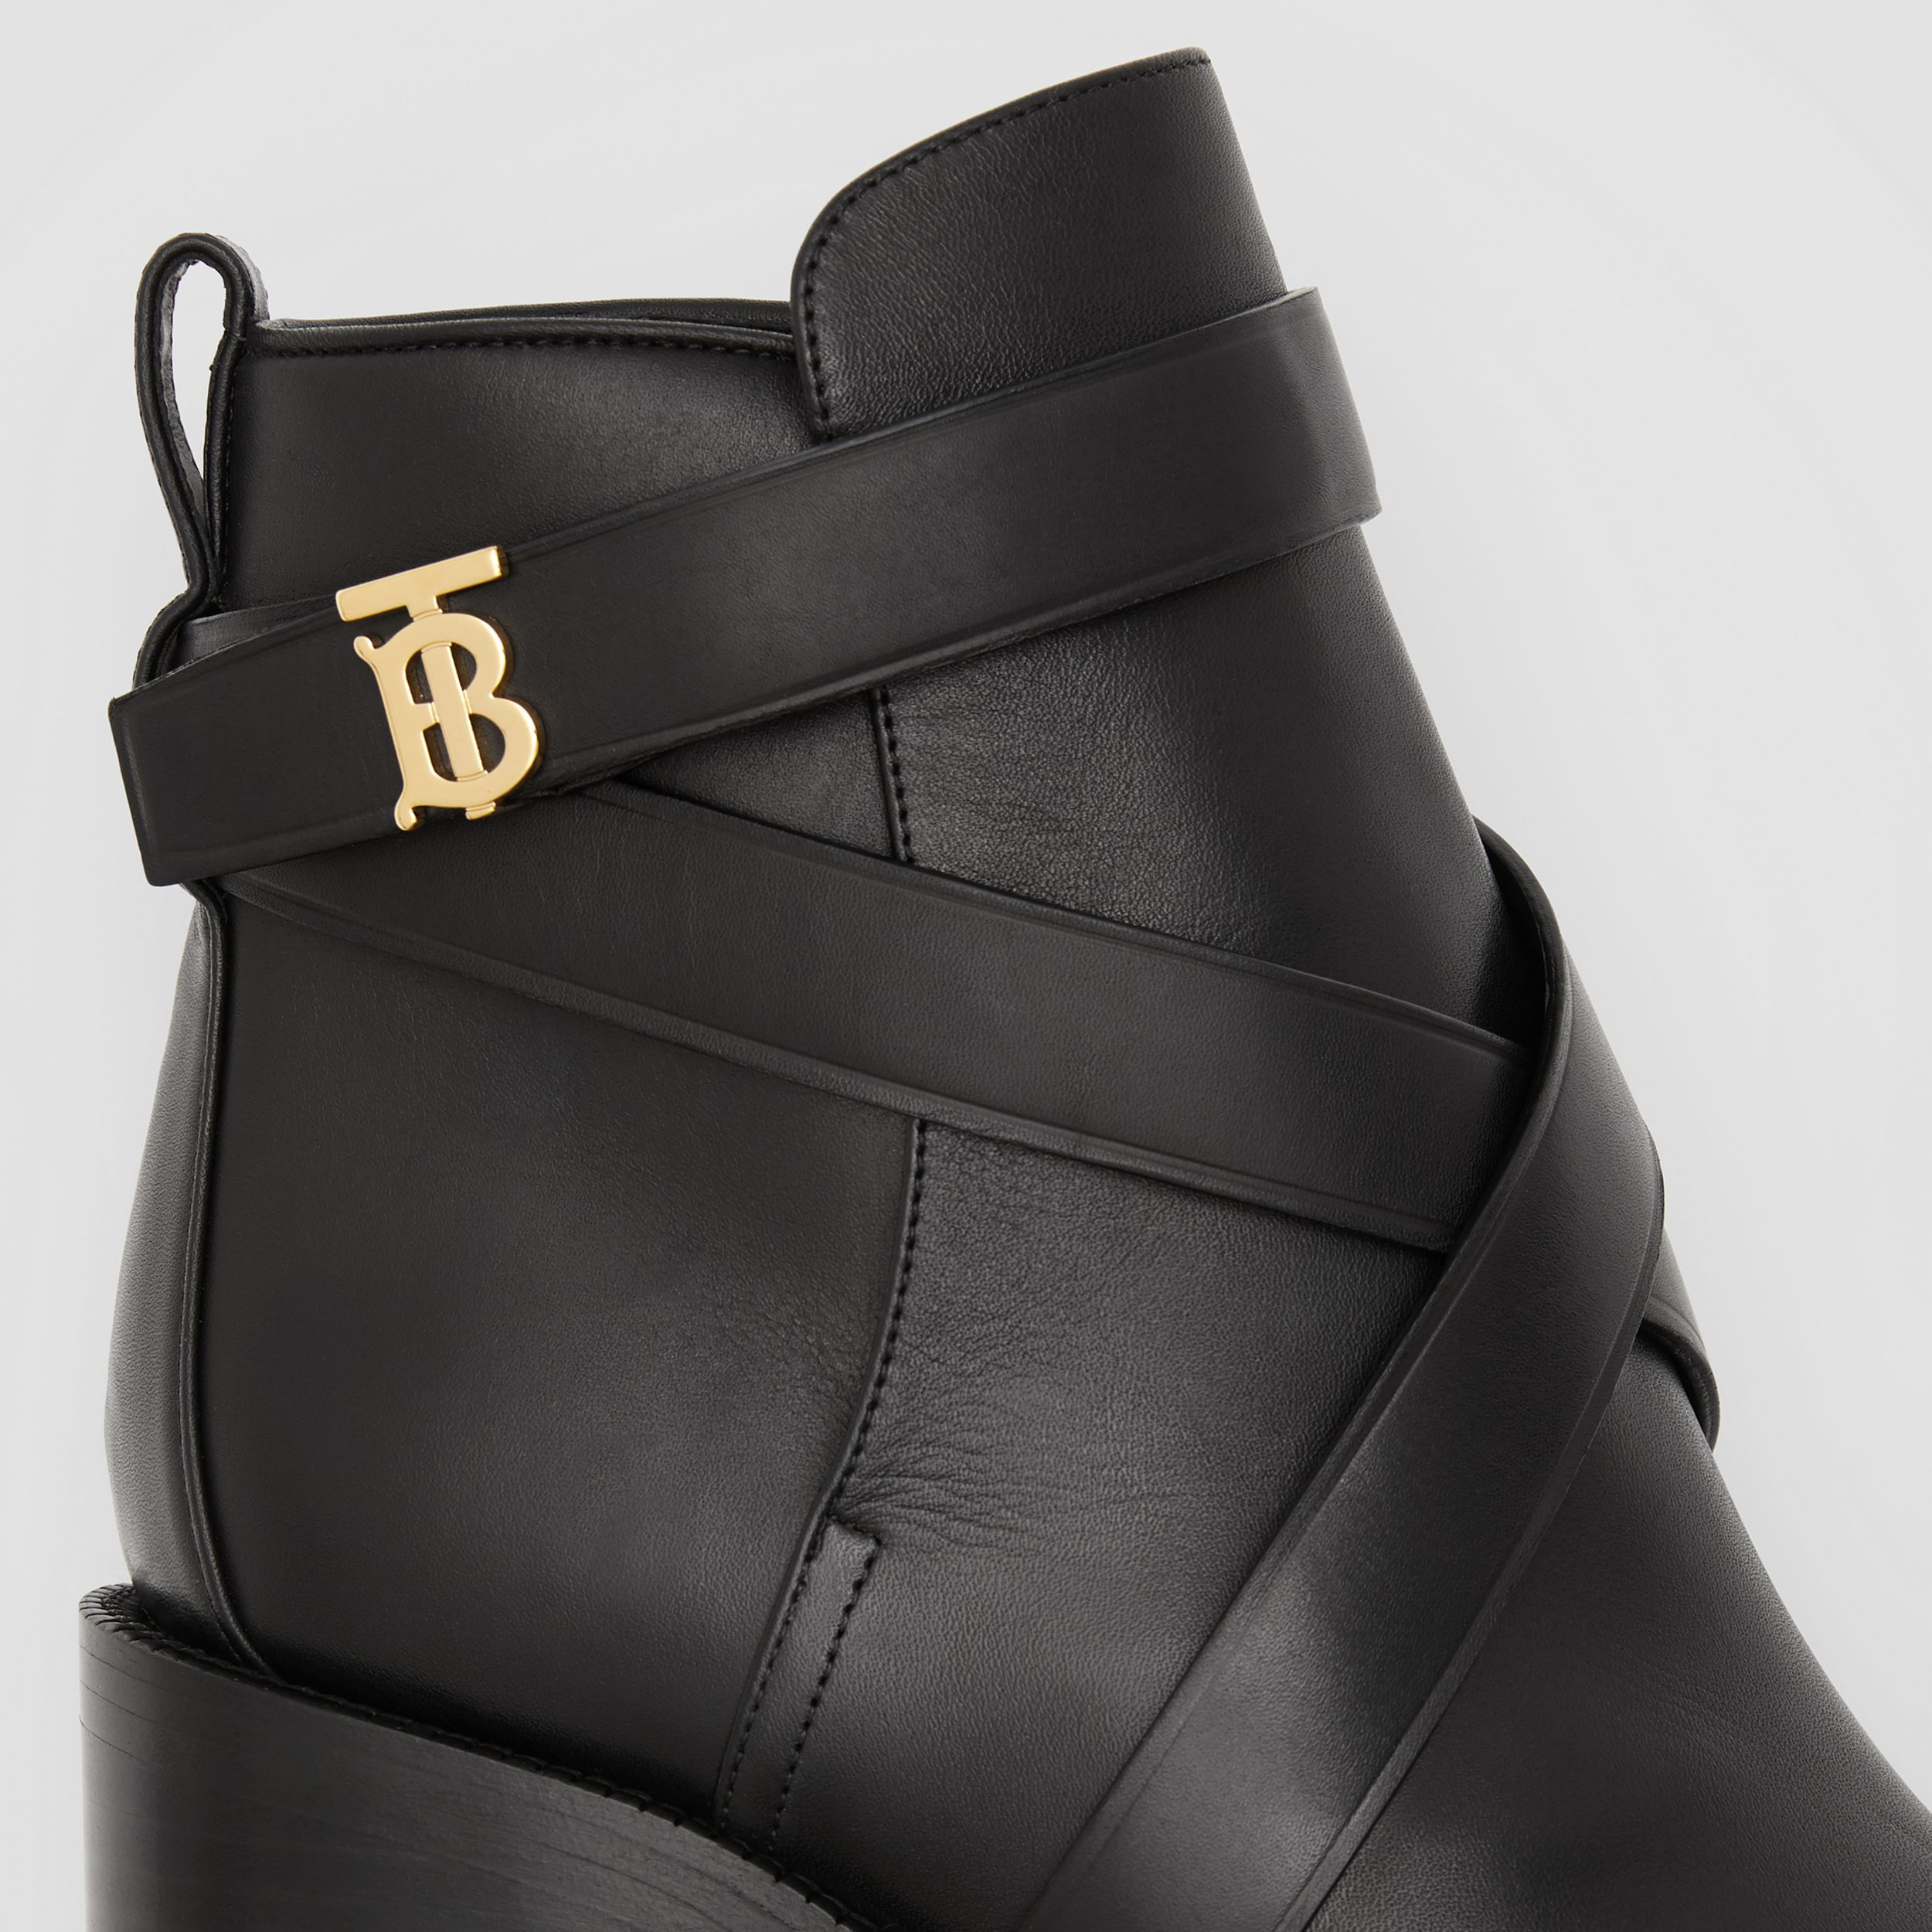 Monogram Motif Leather Ankle Boots in Black - Women | Burberry Australia - 2